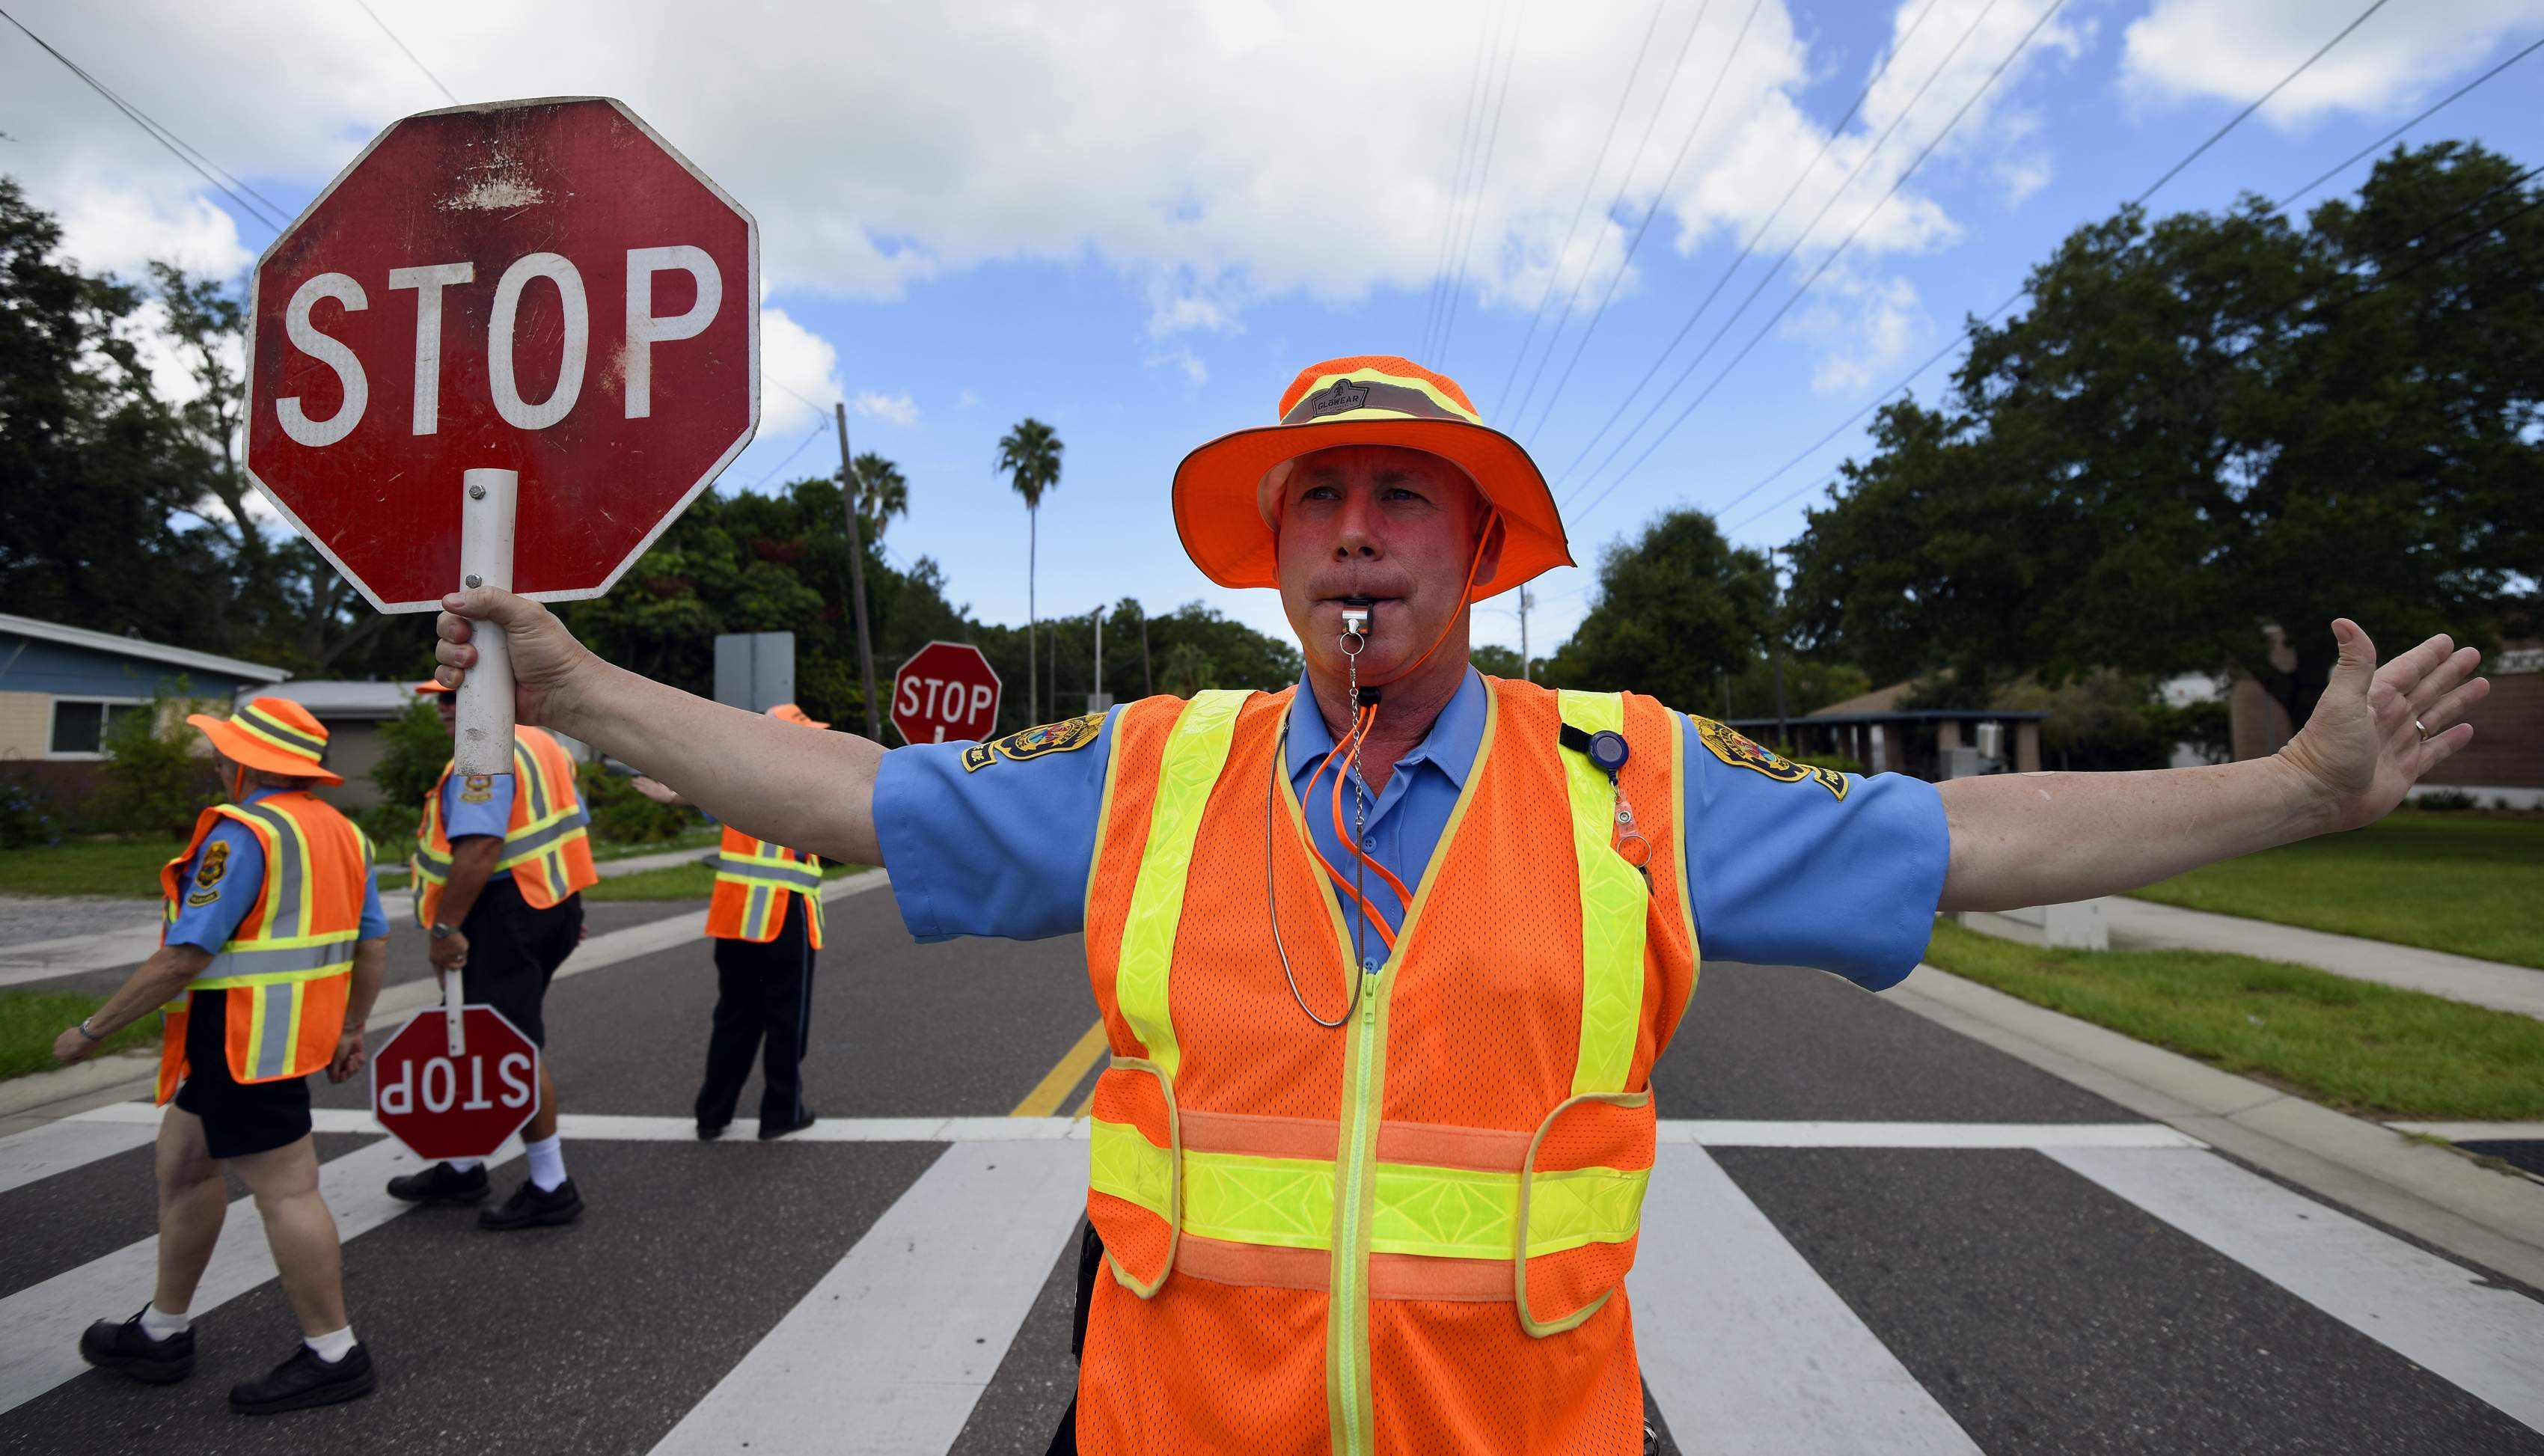 school zone safety crossing guards